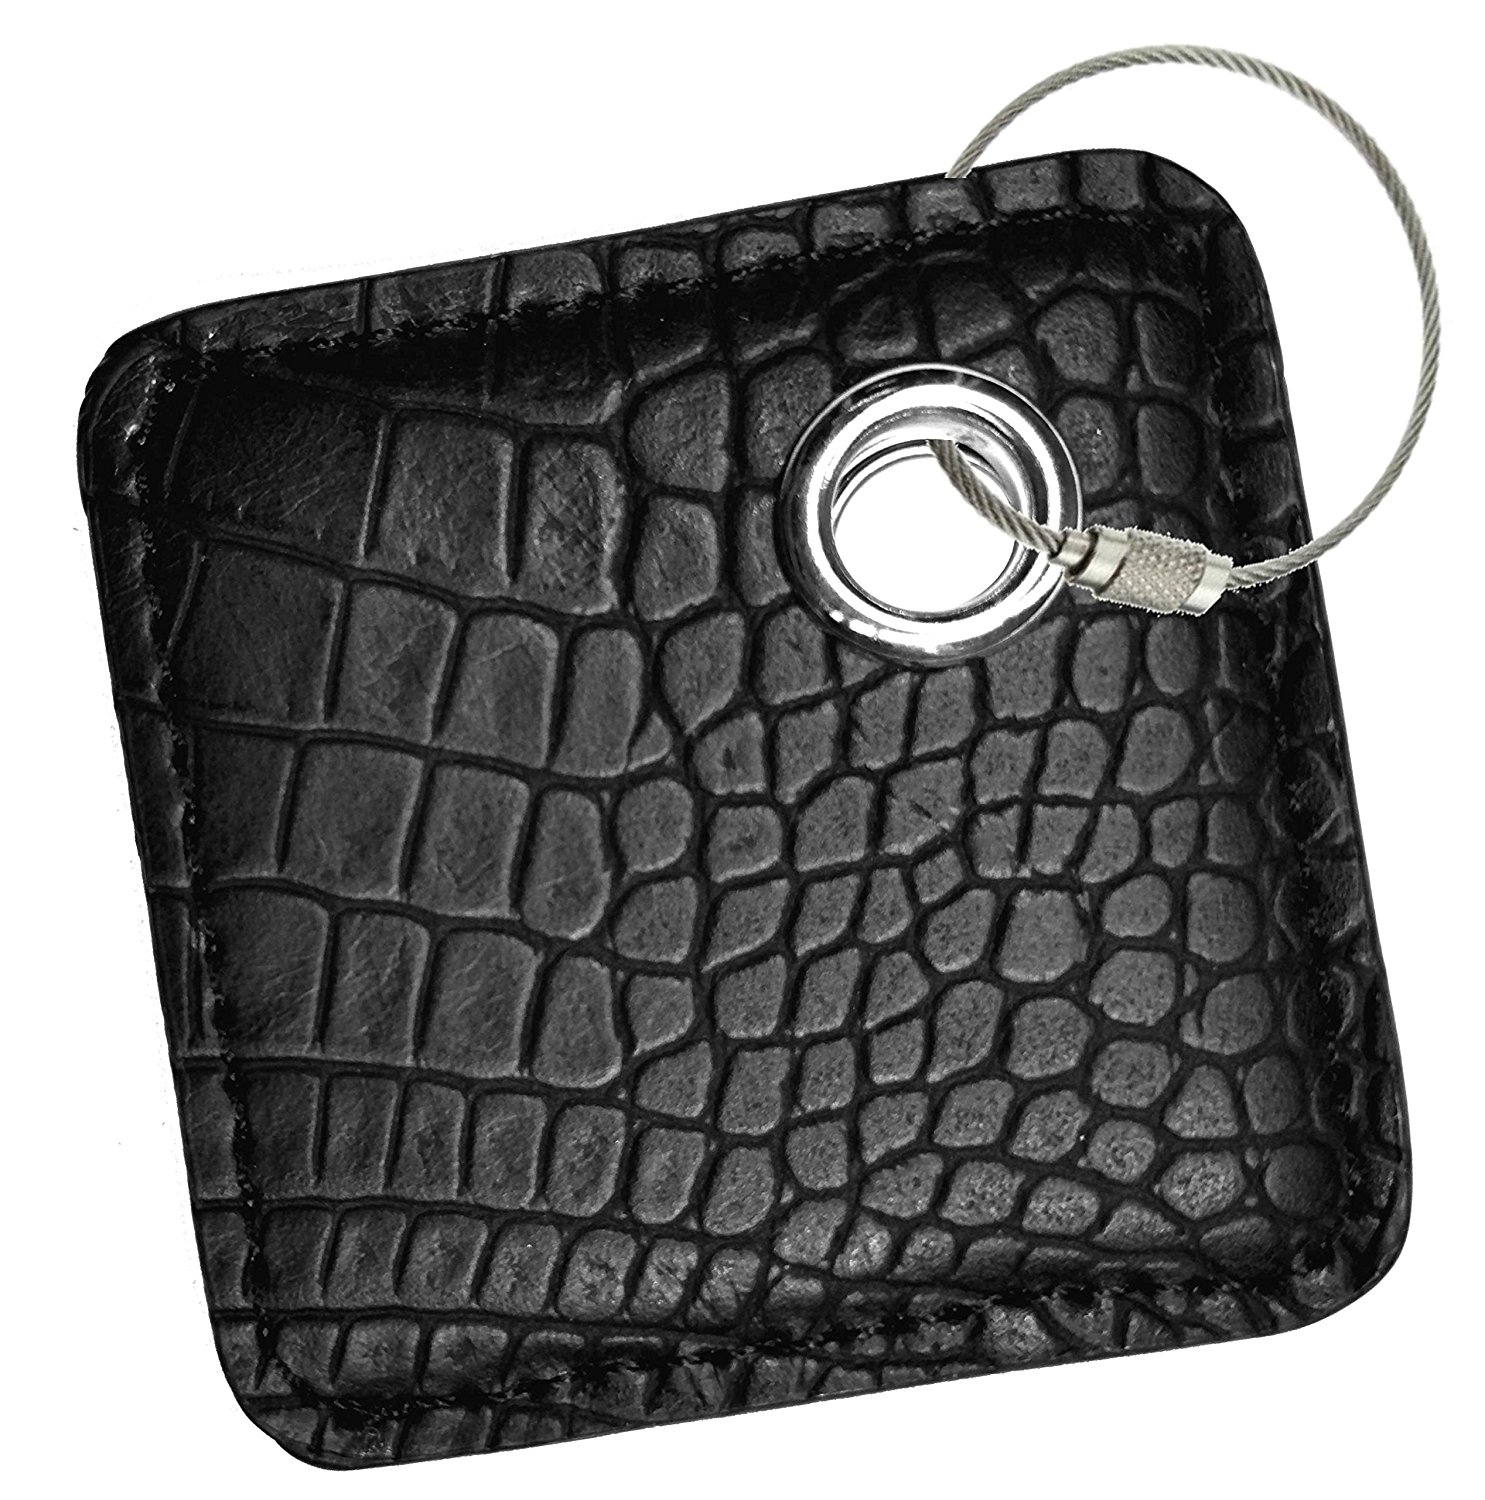 fashion key chain cover accessories for tile skin phone finder key finder item finder (only case, NO tracker included)